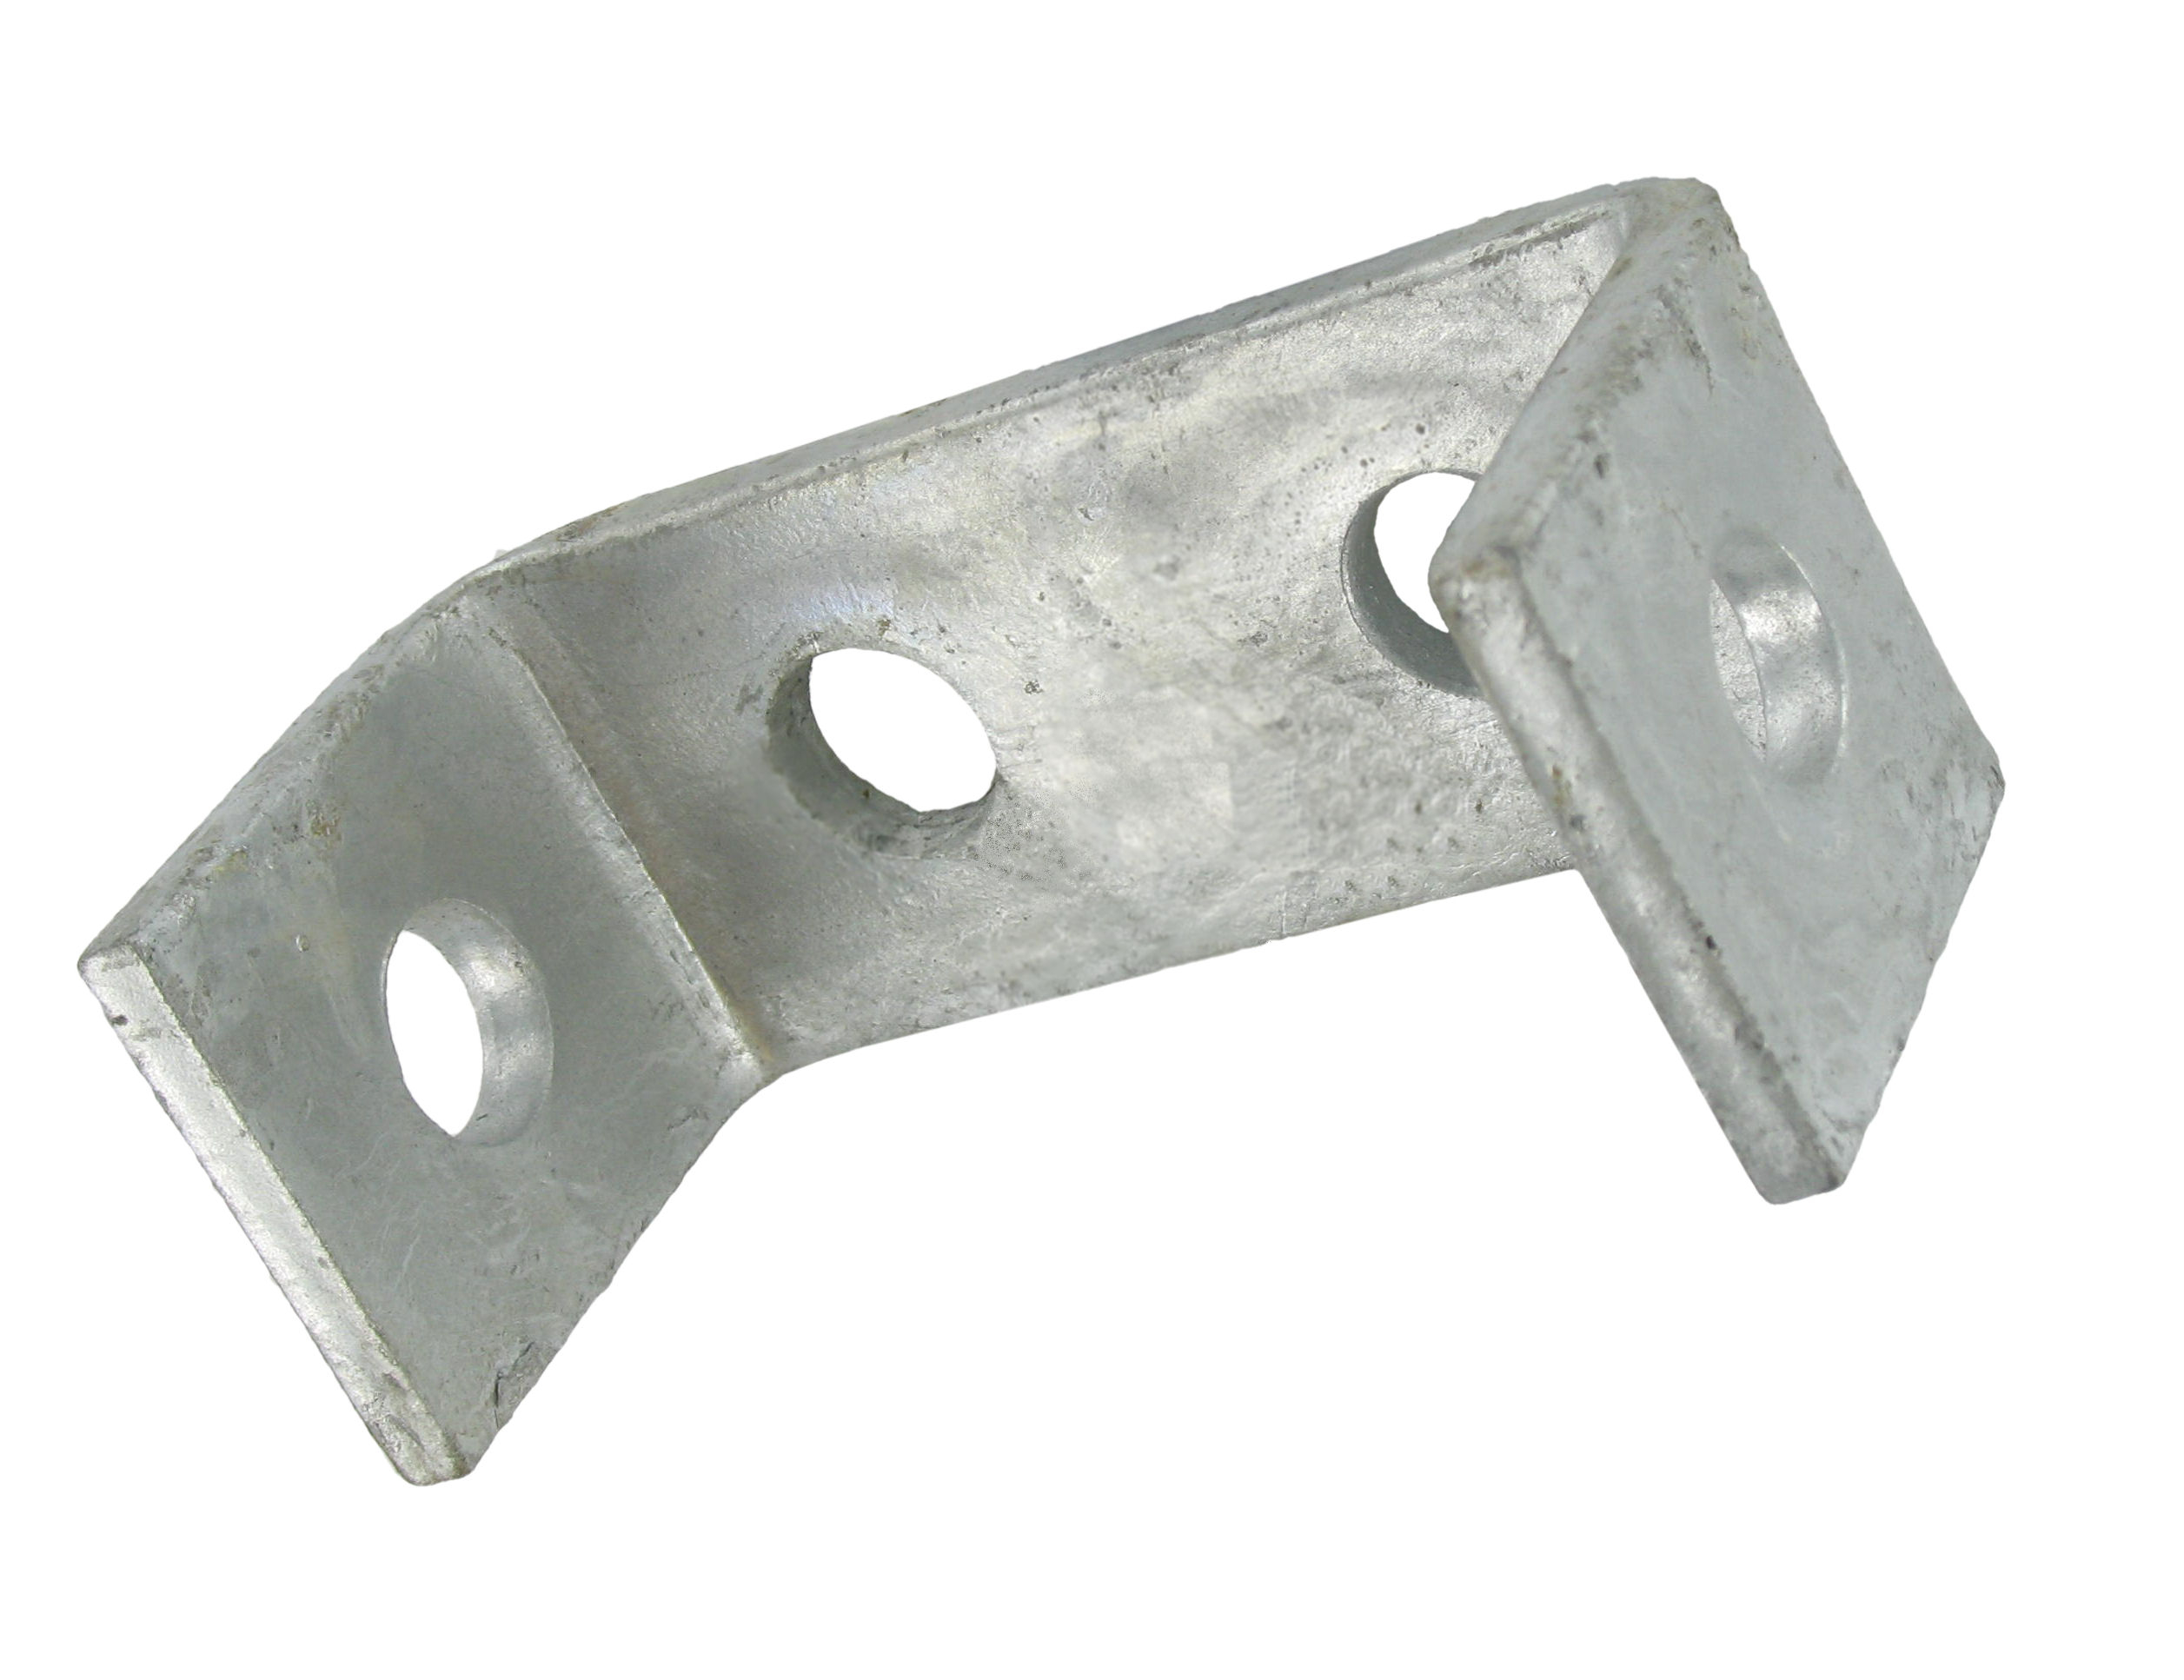 CHANNEL JOINTING BRACKET